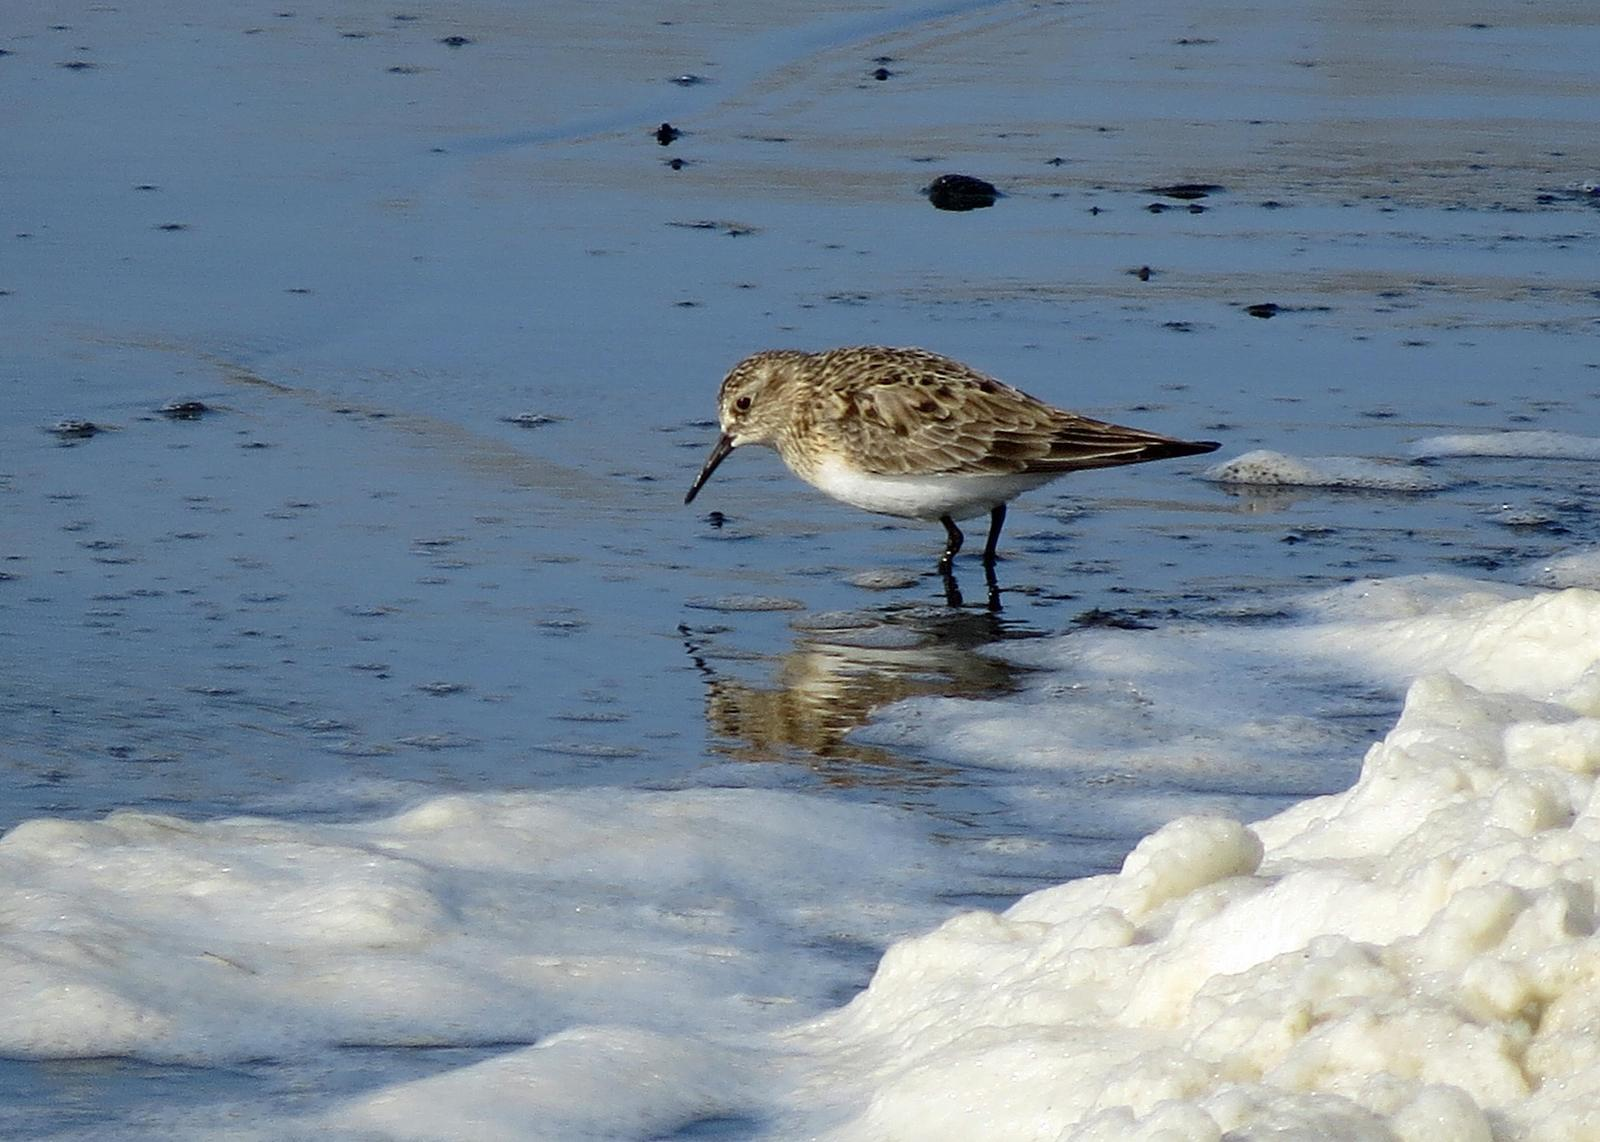 Baird's Sandpiper Photo by Kelly Preheim